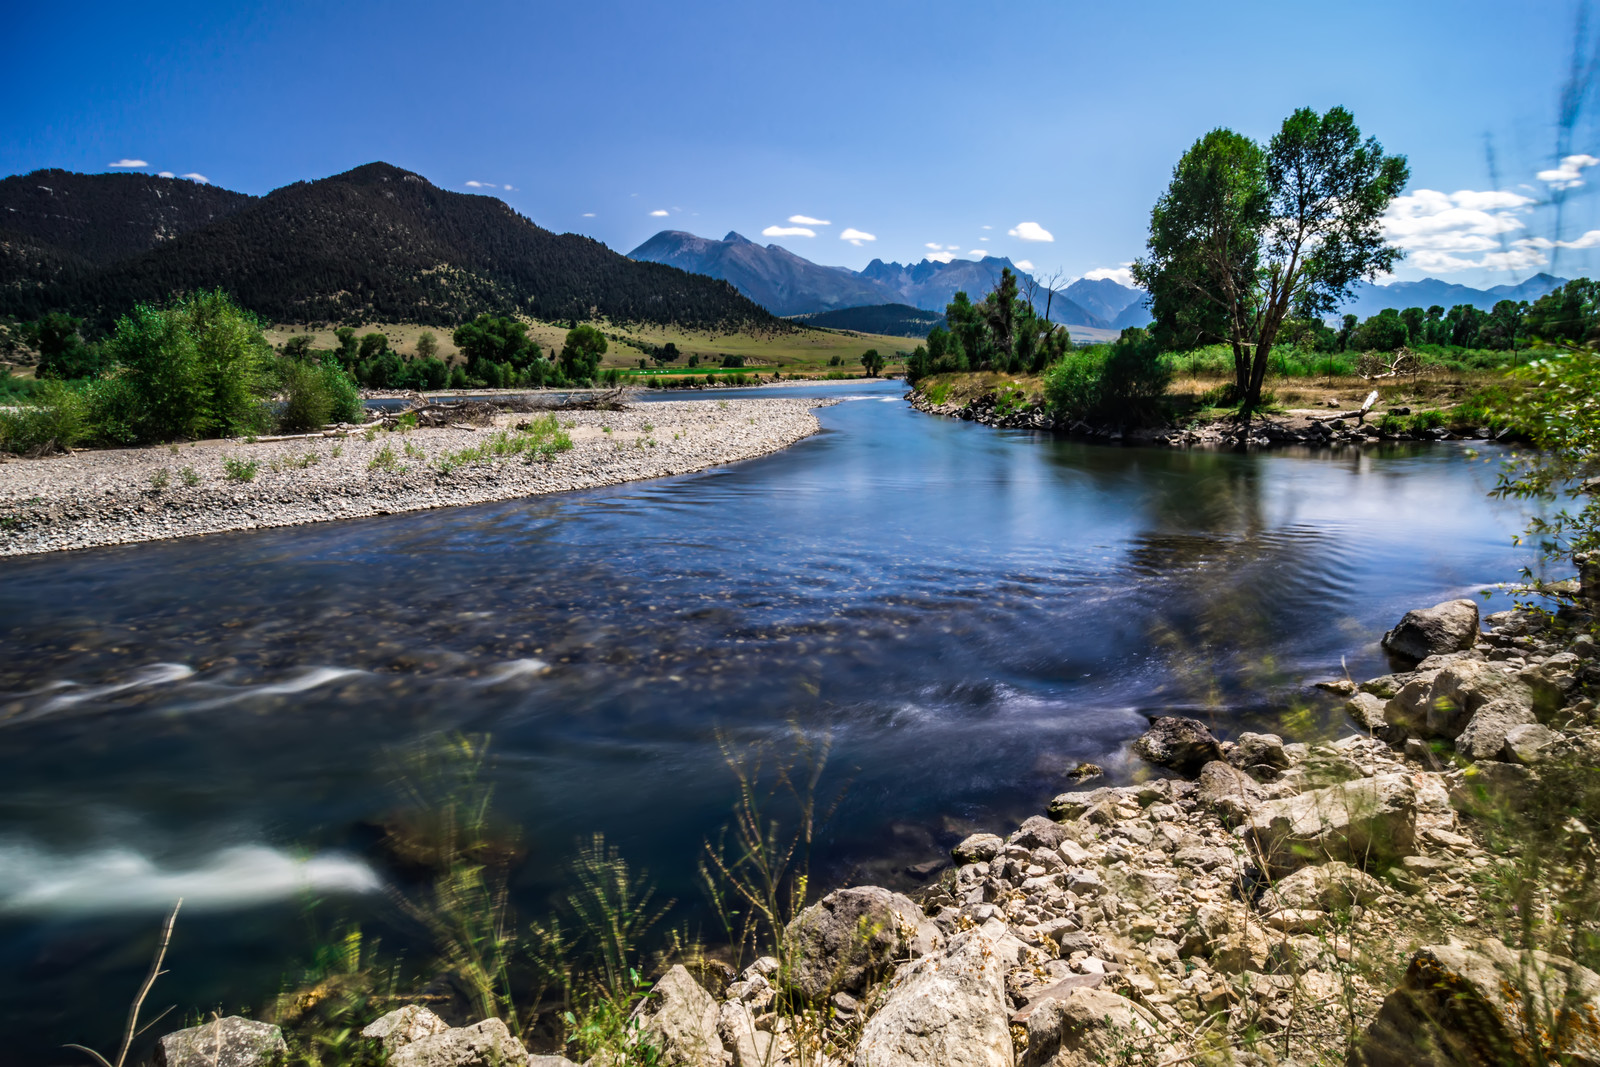 Yellowstone river on a bright day with blue skies and mountains in the background with rocky shores